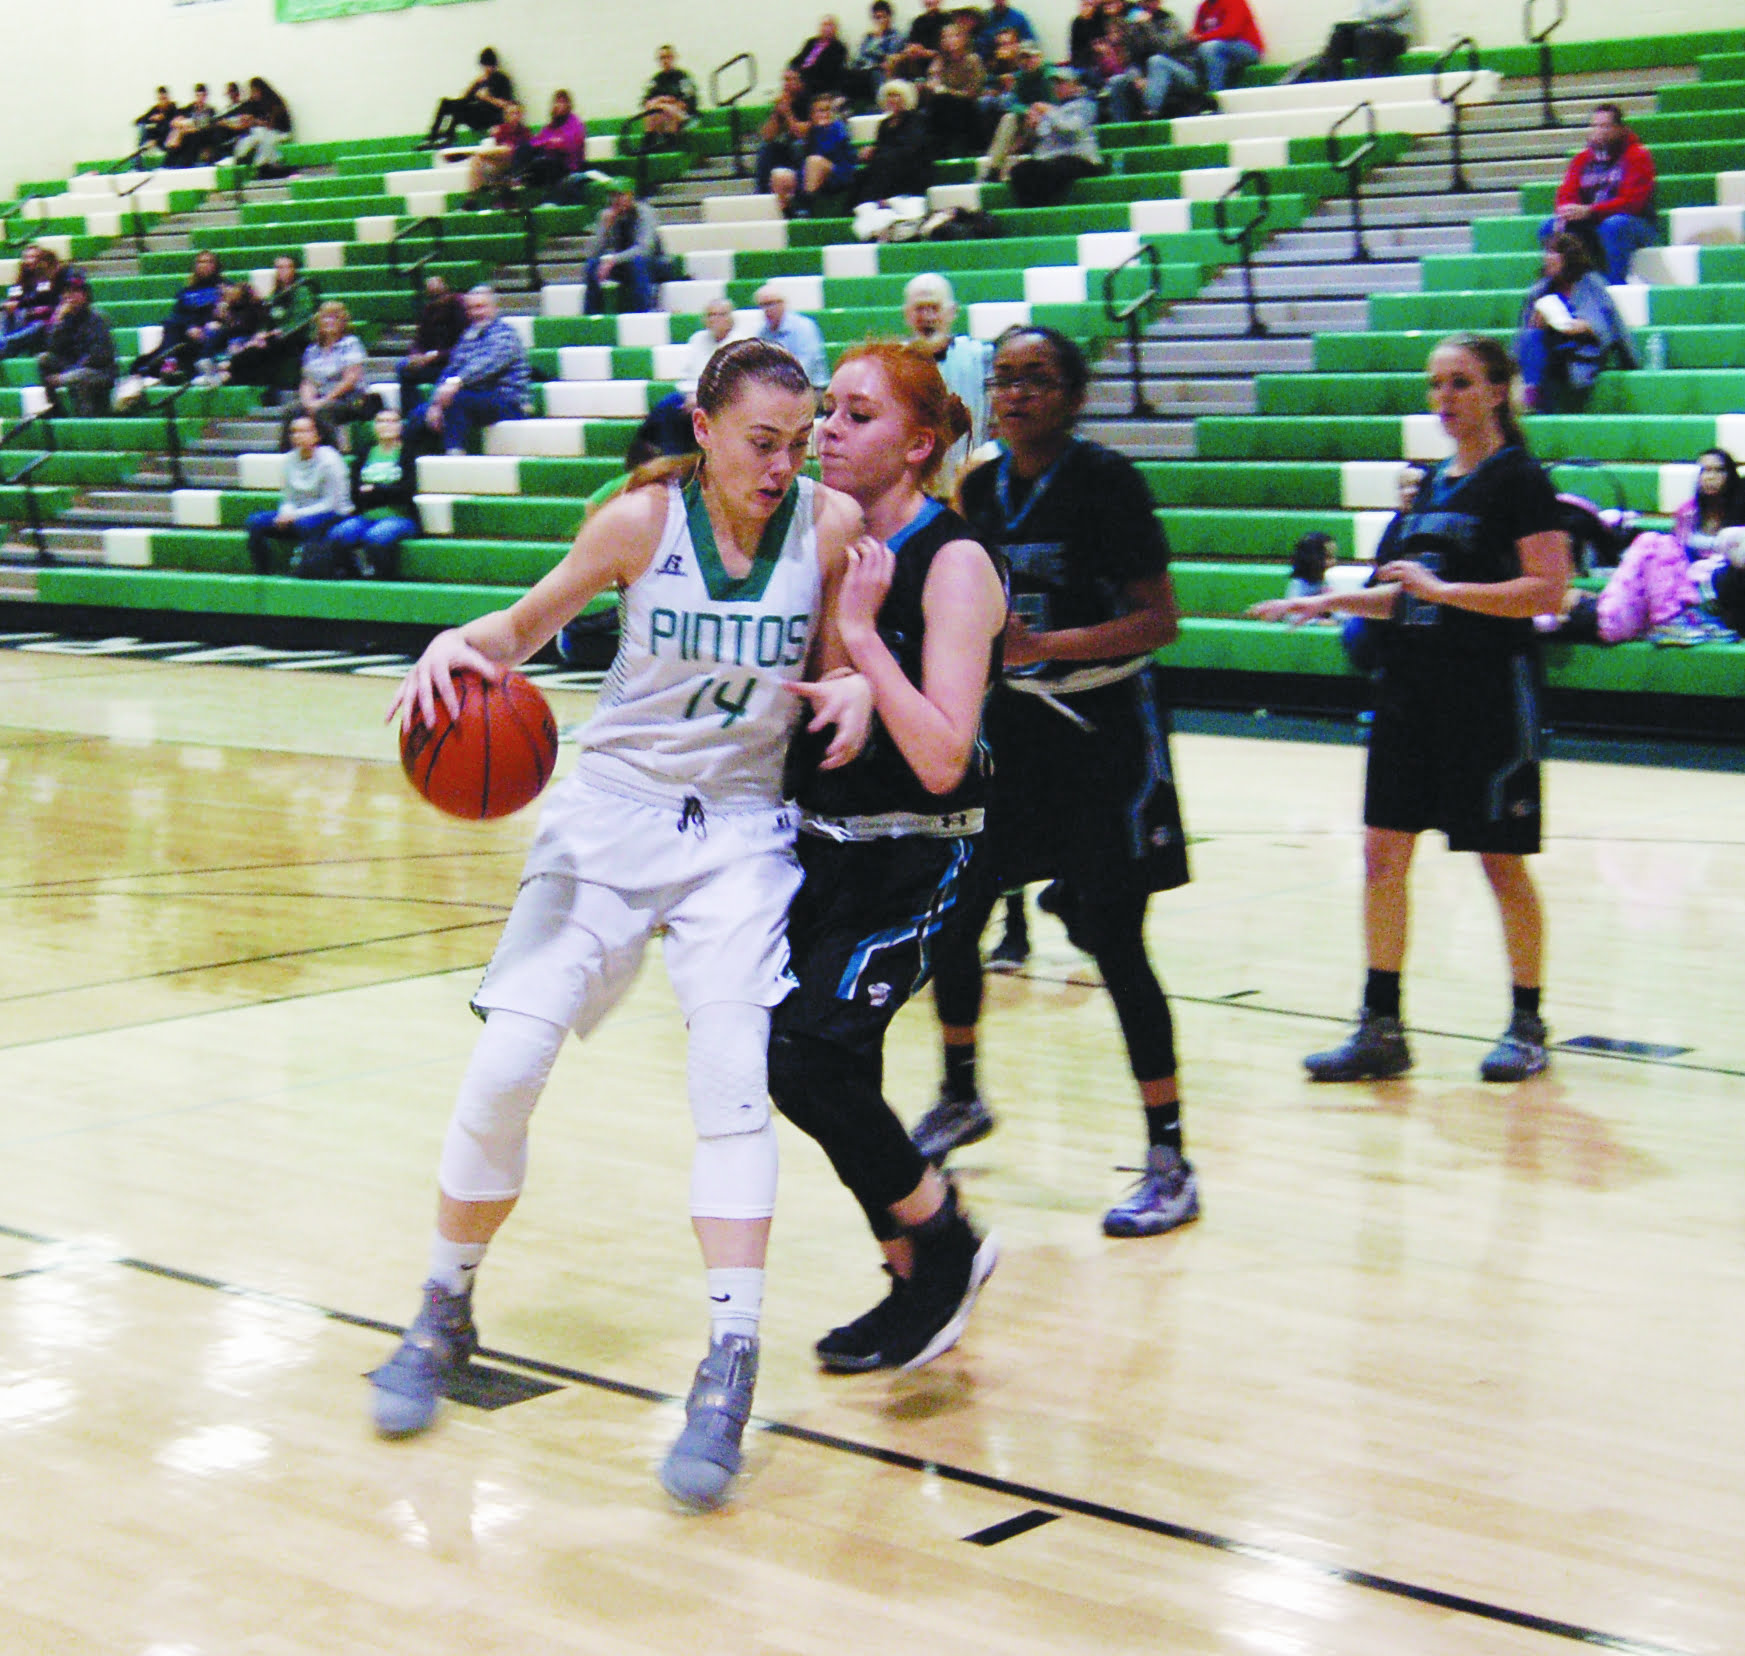 After recent blowouts, Moriarty girls hoopsters perfect at 17-0